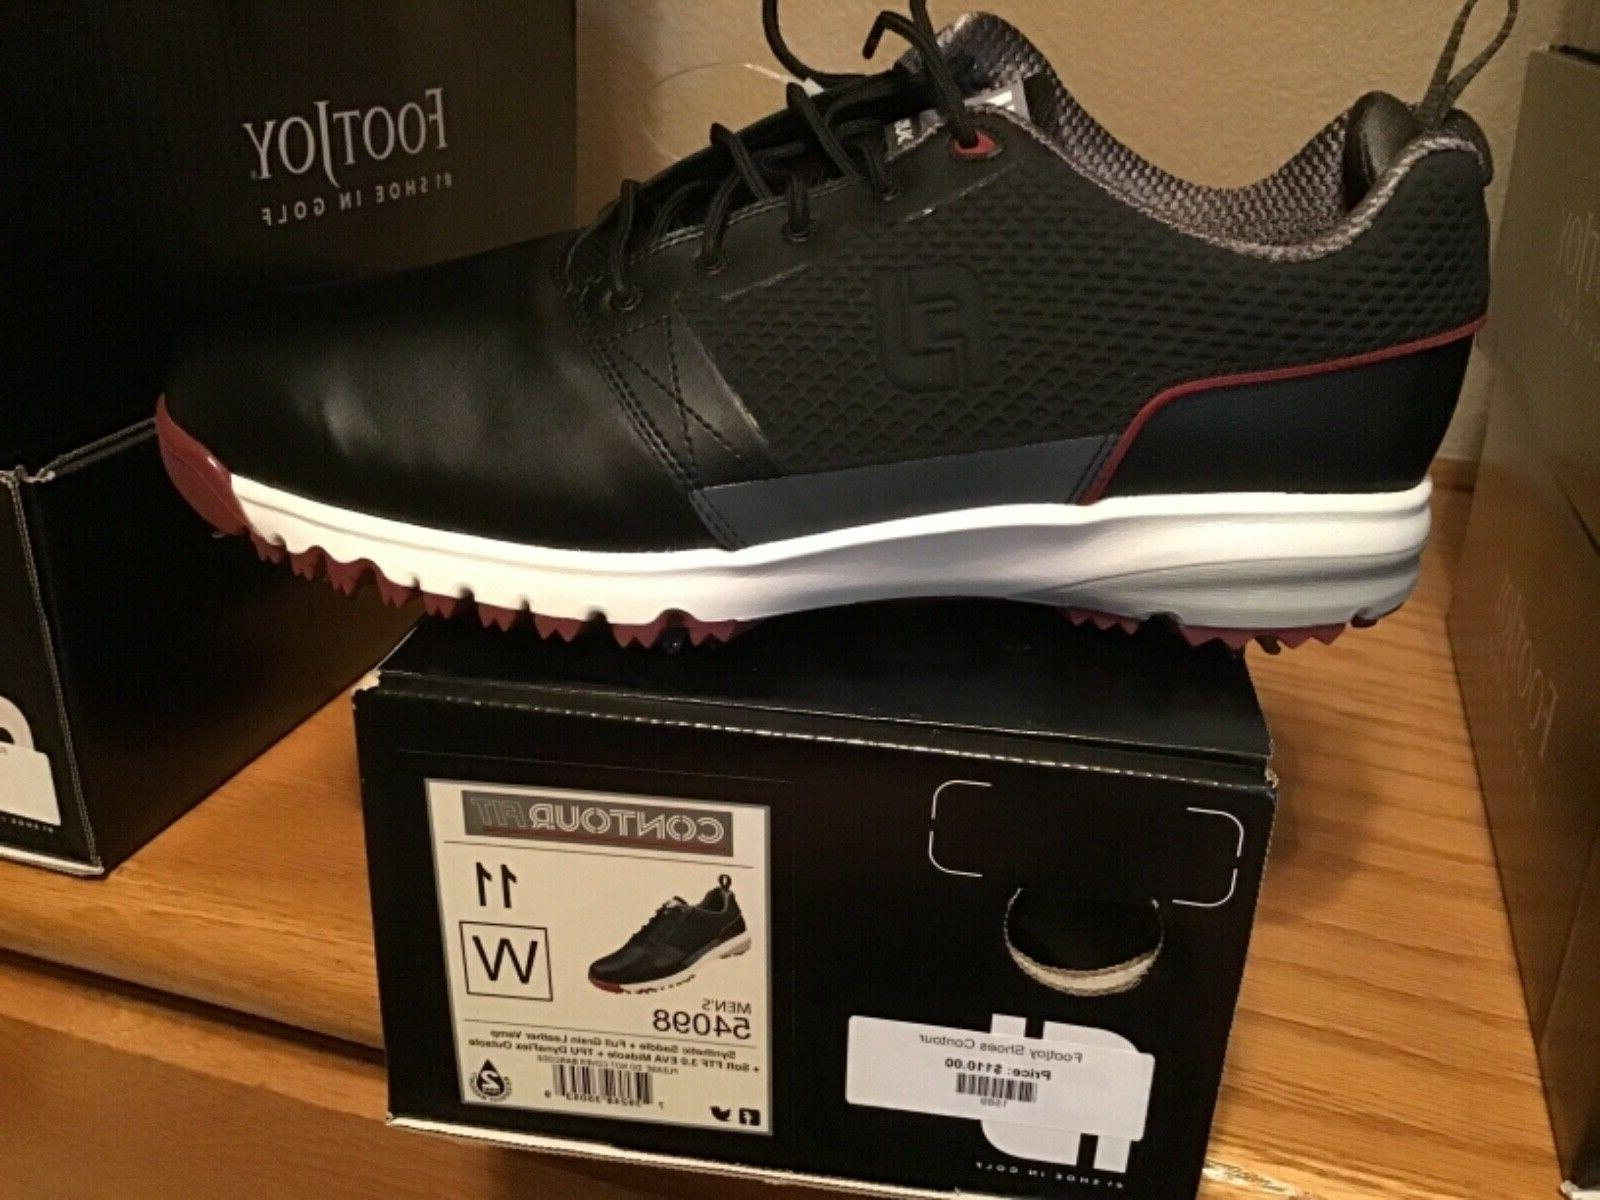 brand new in box size 11 wide